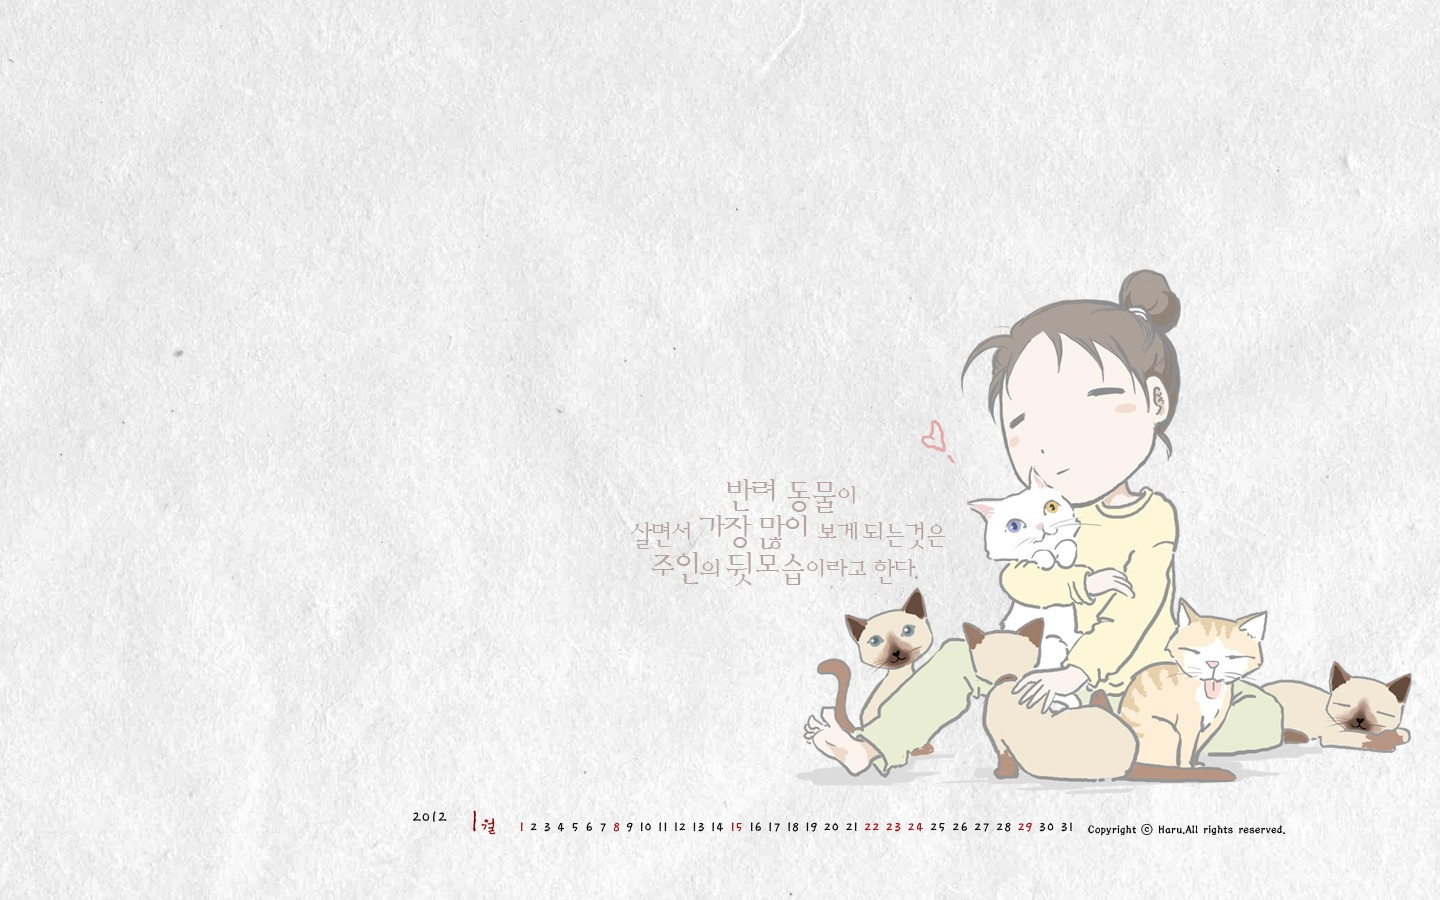 In January Calendar Wallpaper 31346